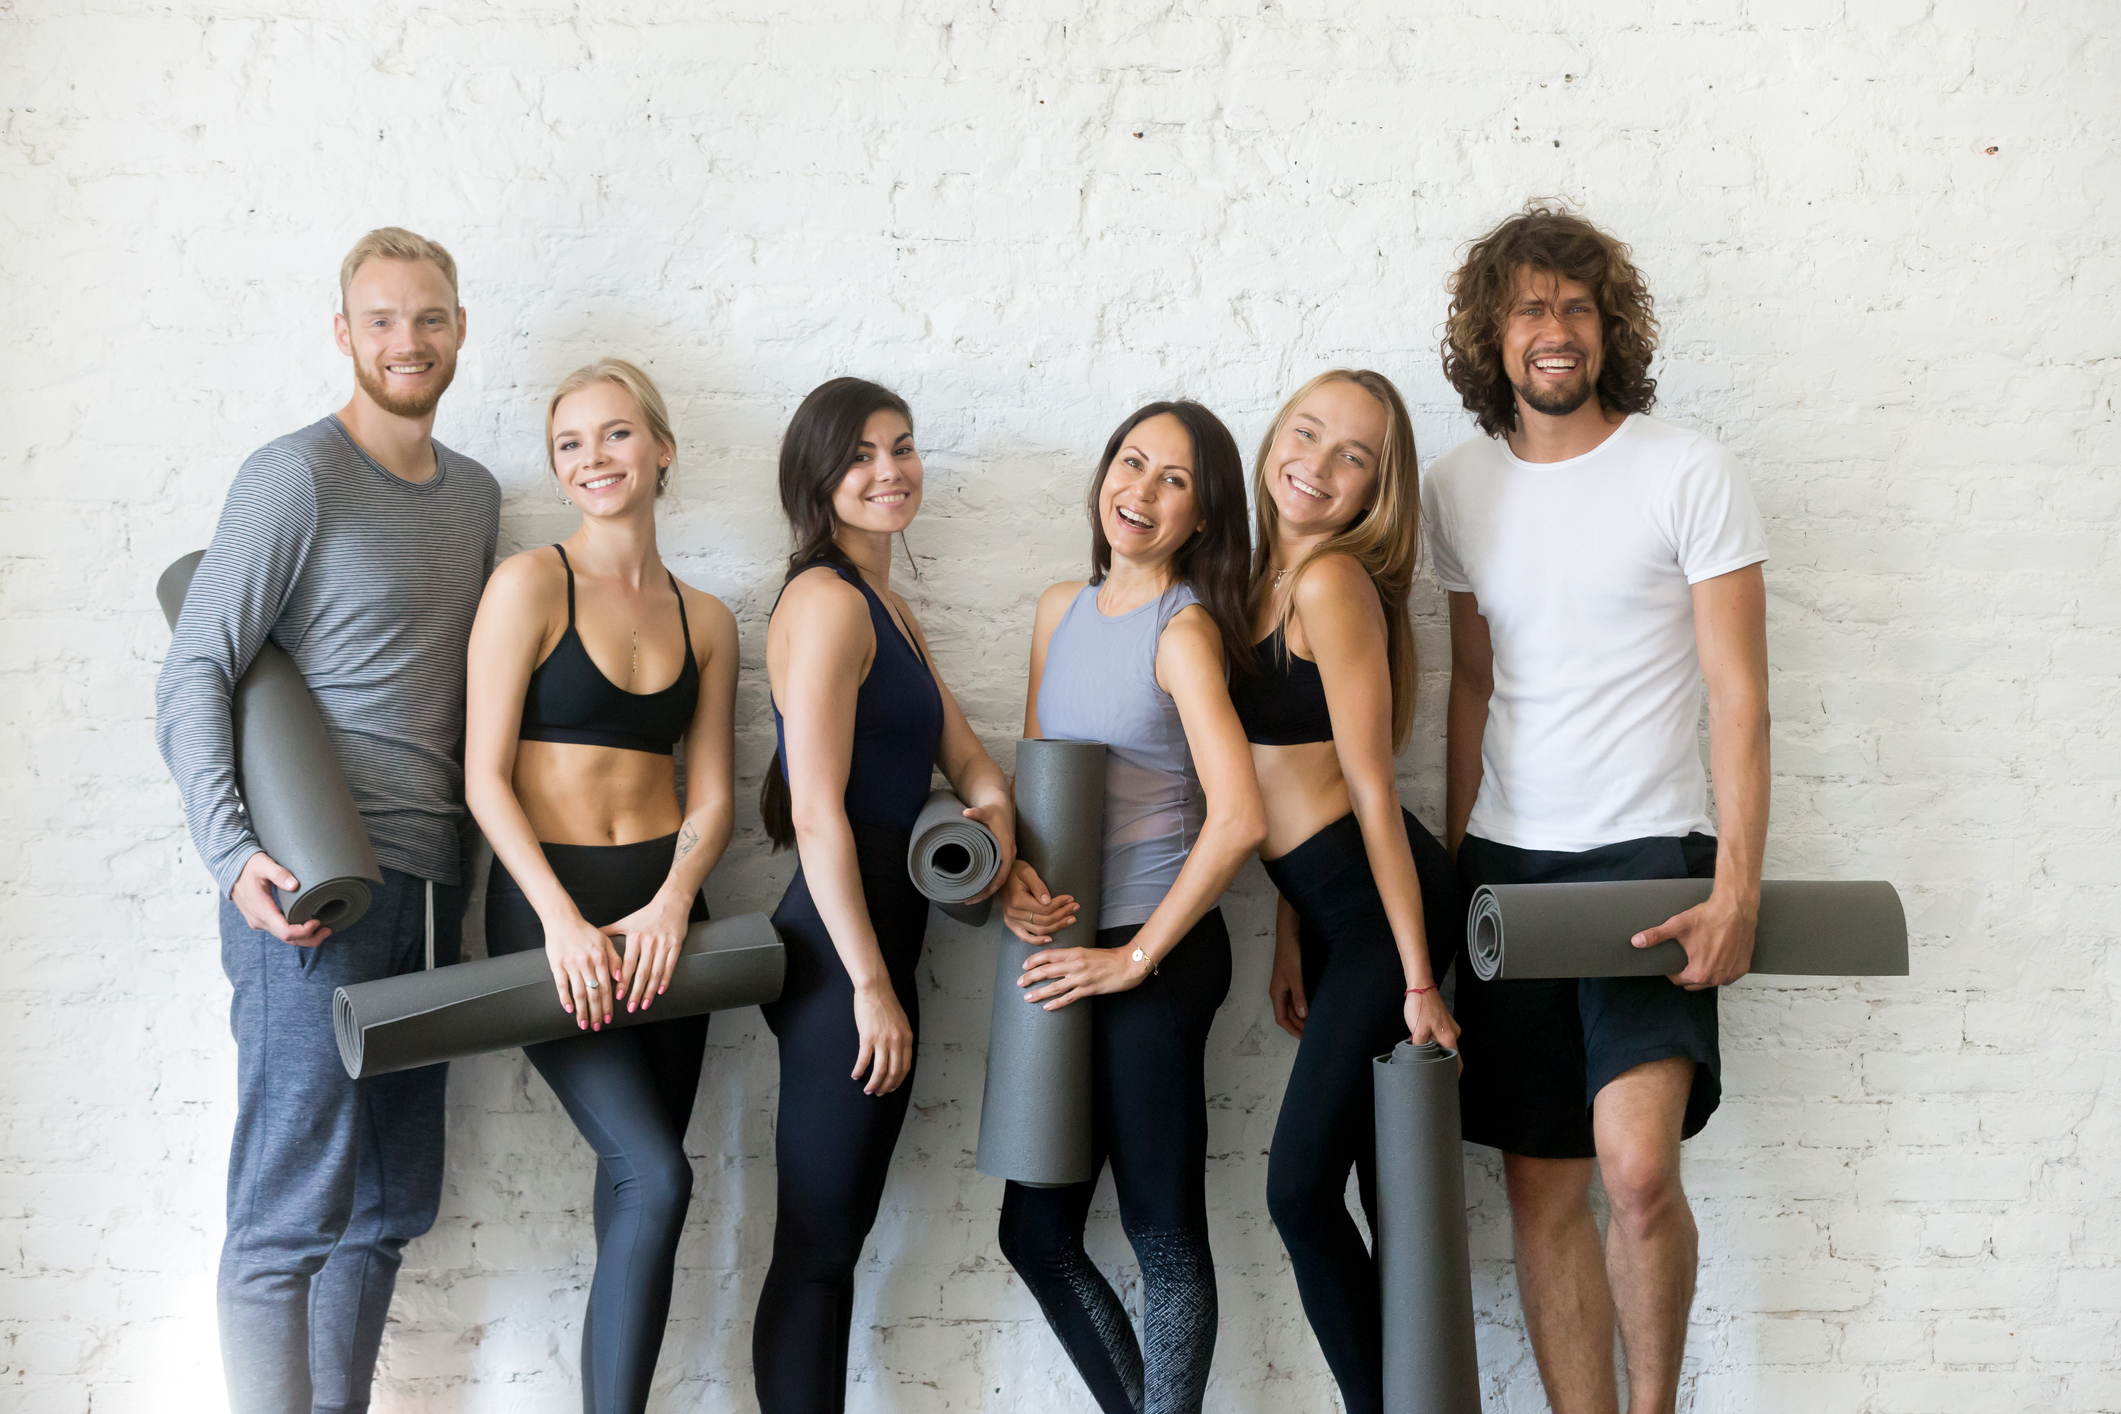 Join The Community - Don't miss your opportunity to join our unique fitness and wellness boutique studio! To learn more please inquire below.